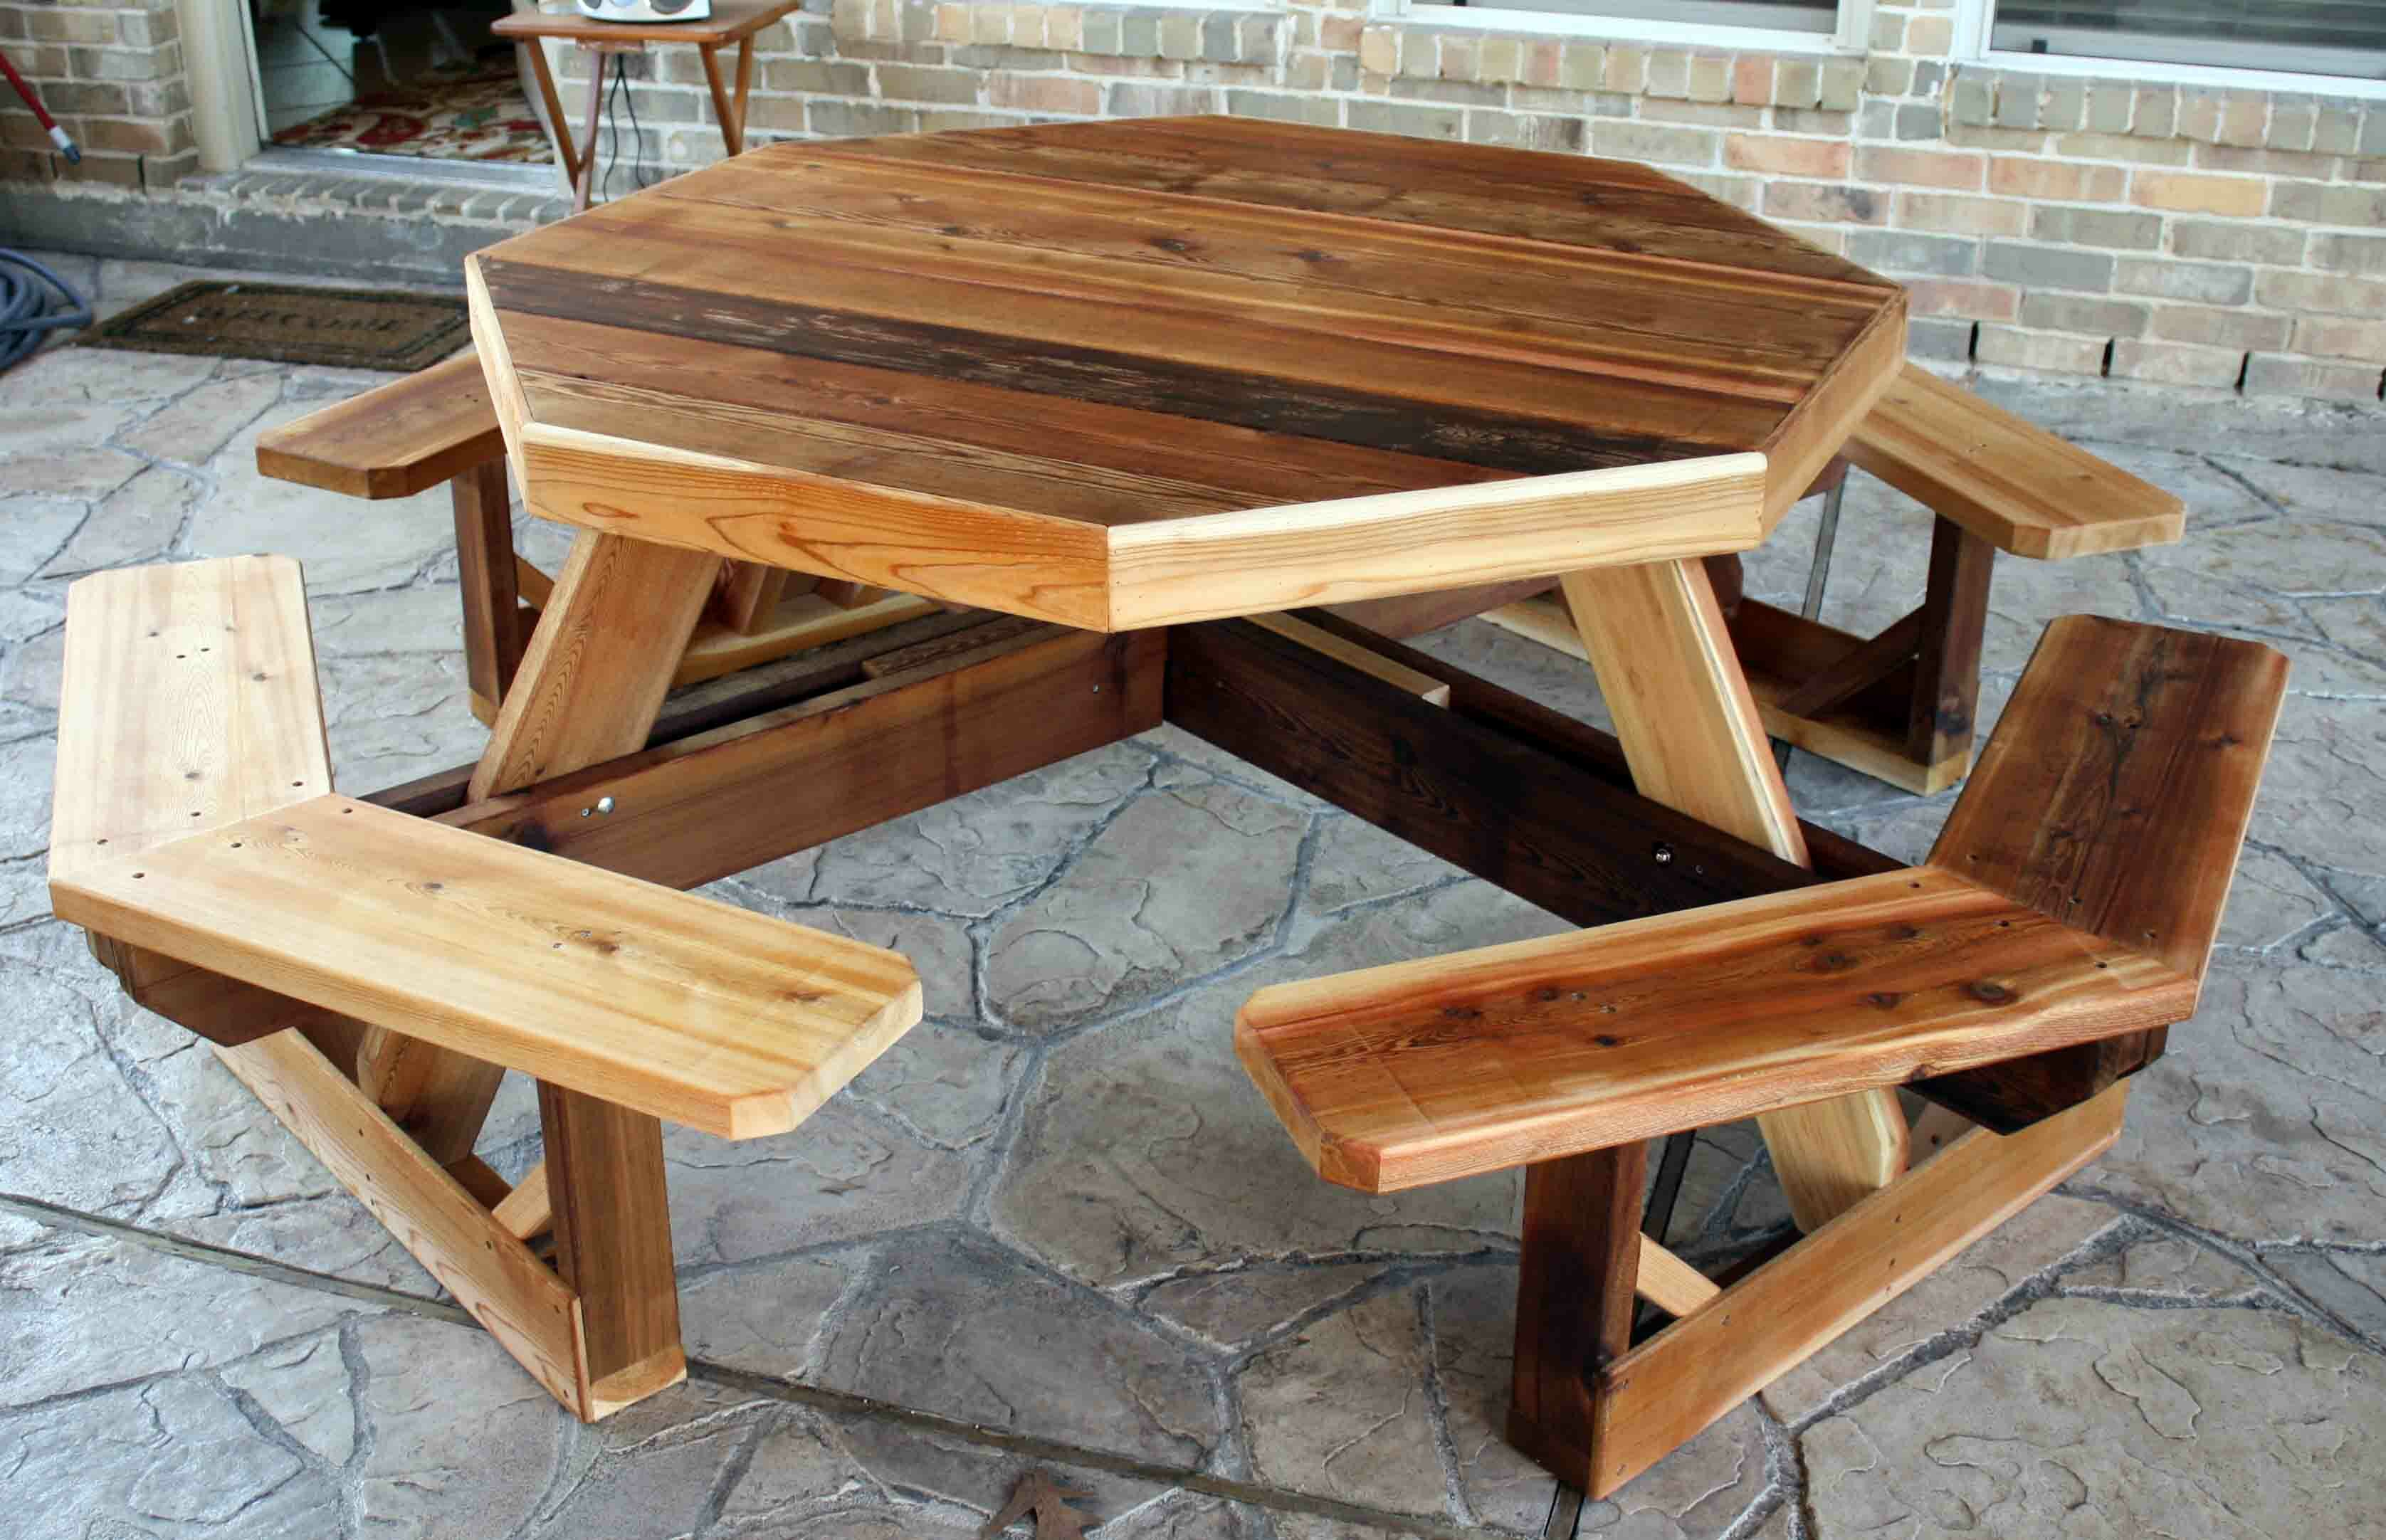 picnic shot bench table up product oak break stores kfs mossy side